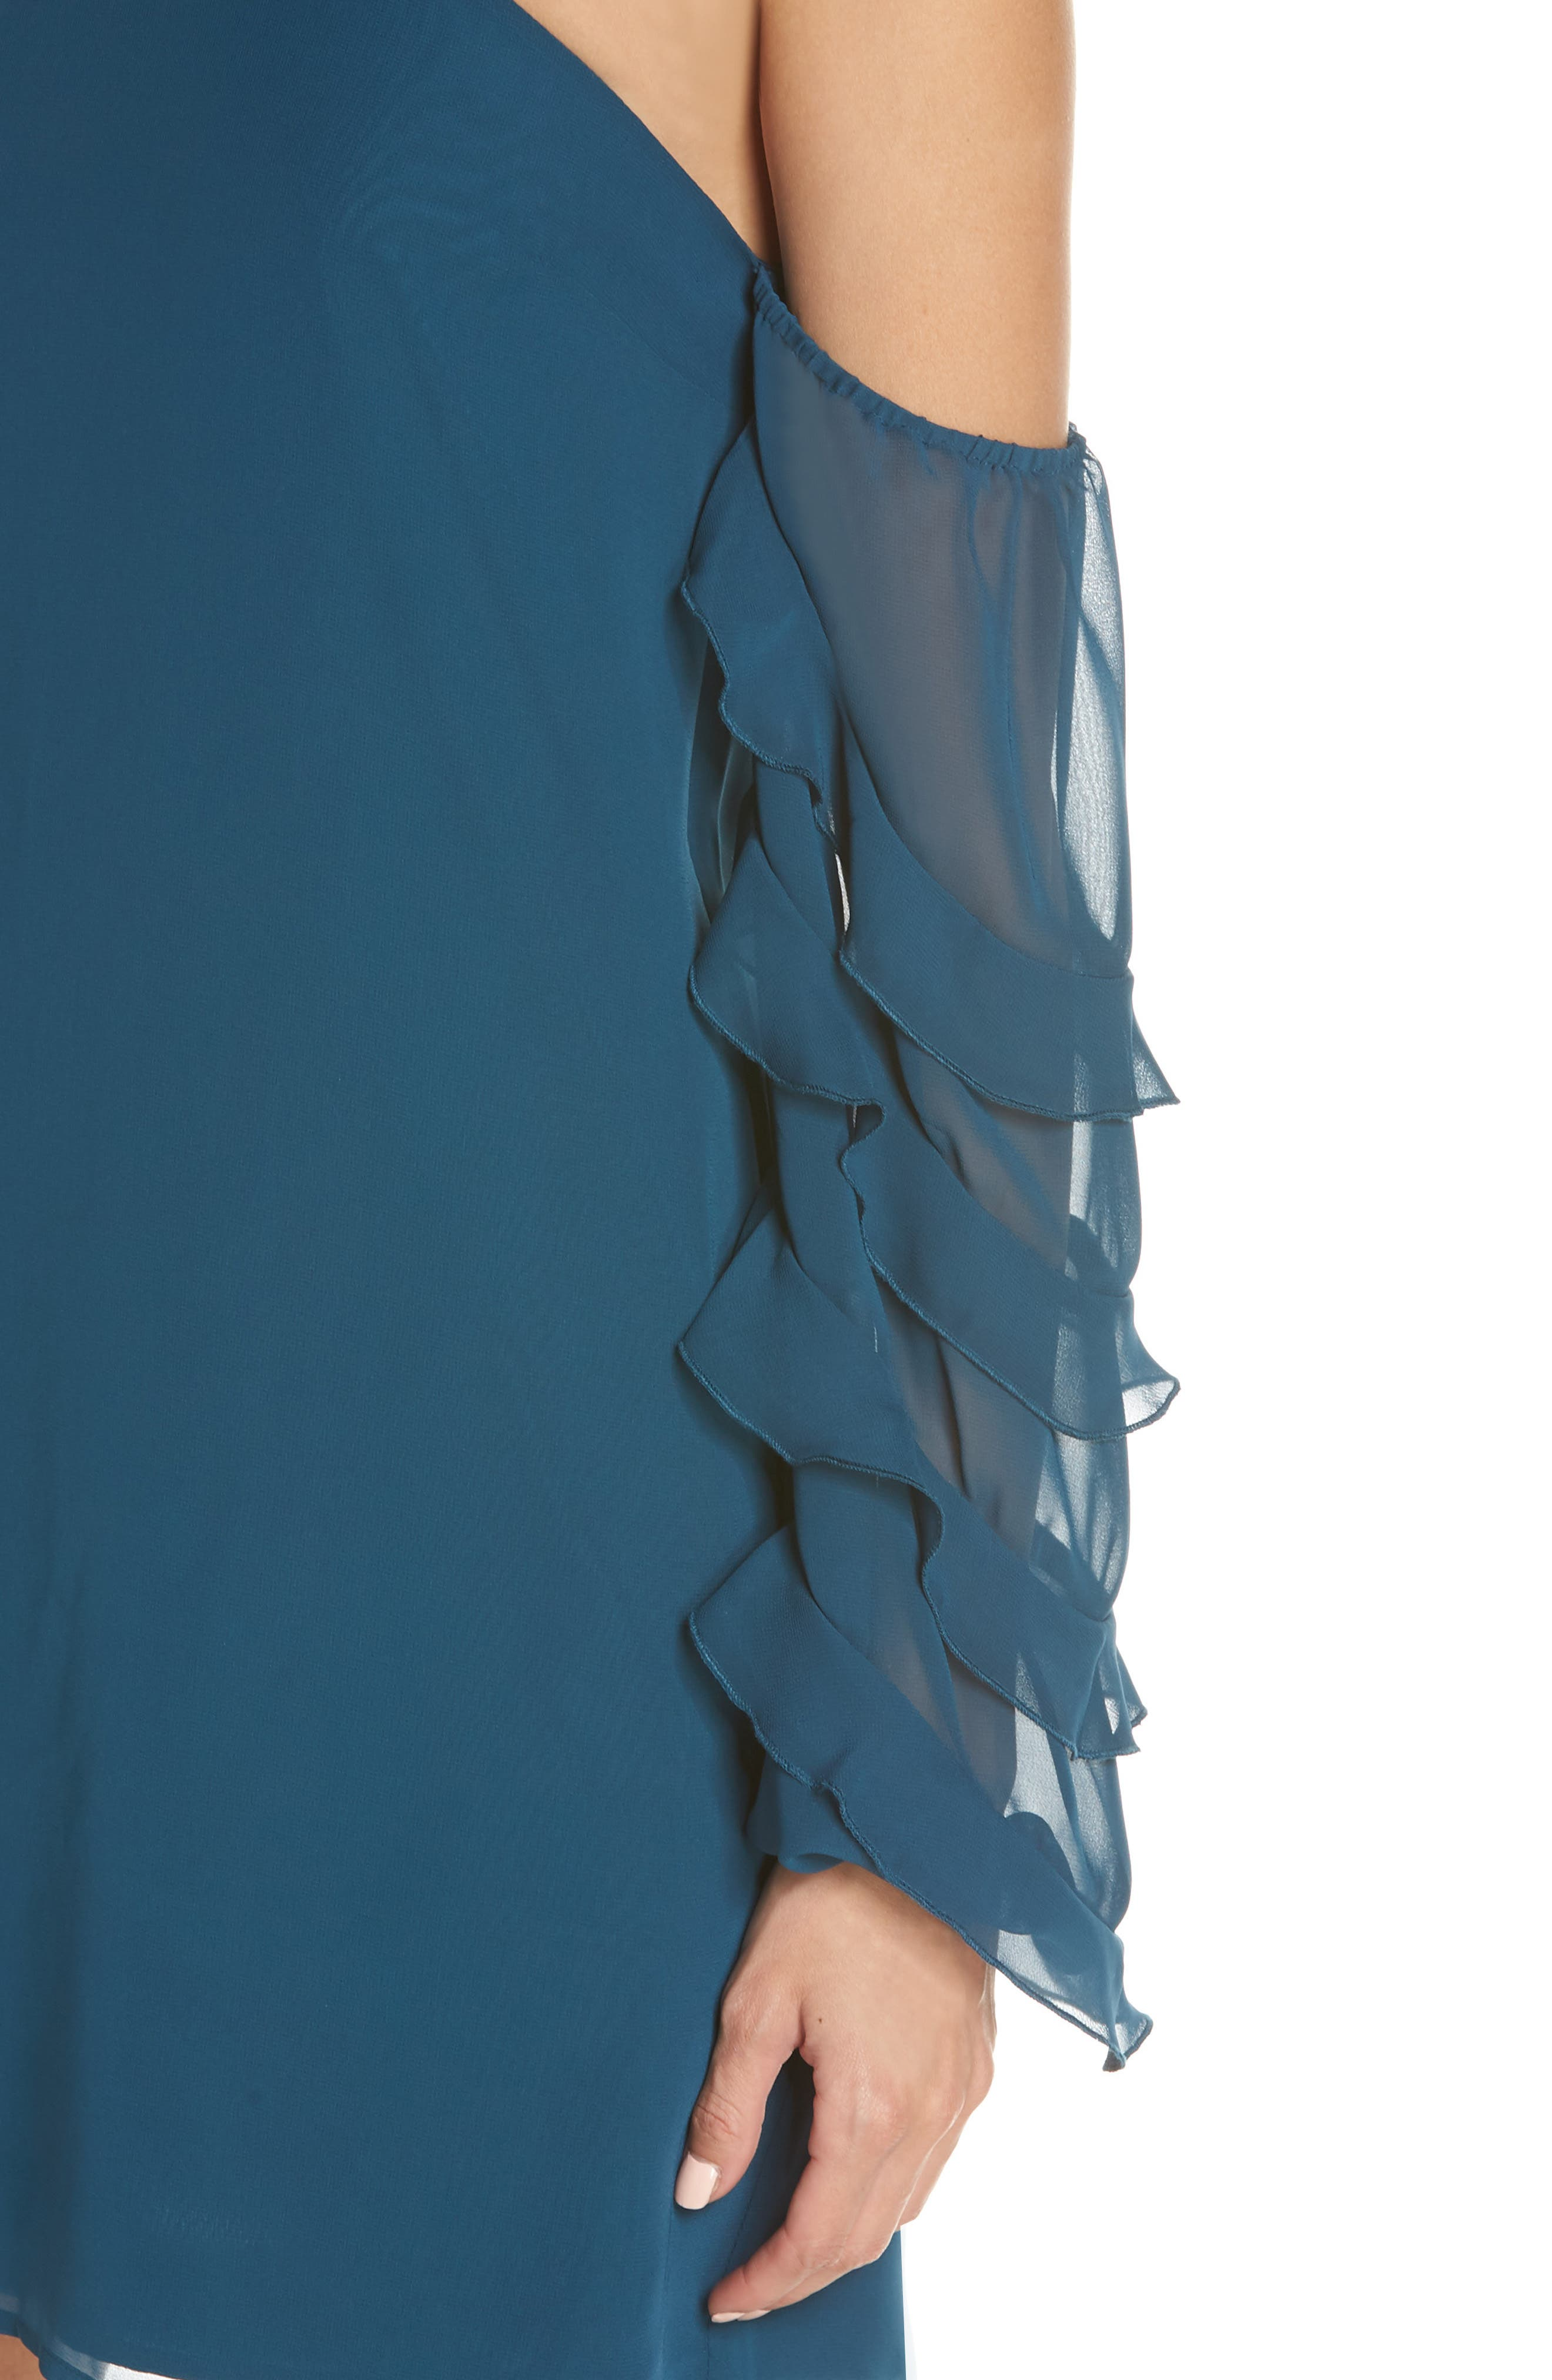 Love the Way I Look Tonight One-Shoulder Minidress,                             Alternate thumbnail 4, color,                             TEAL